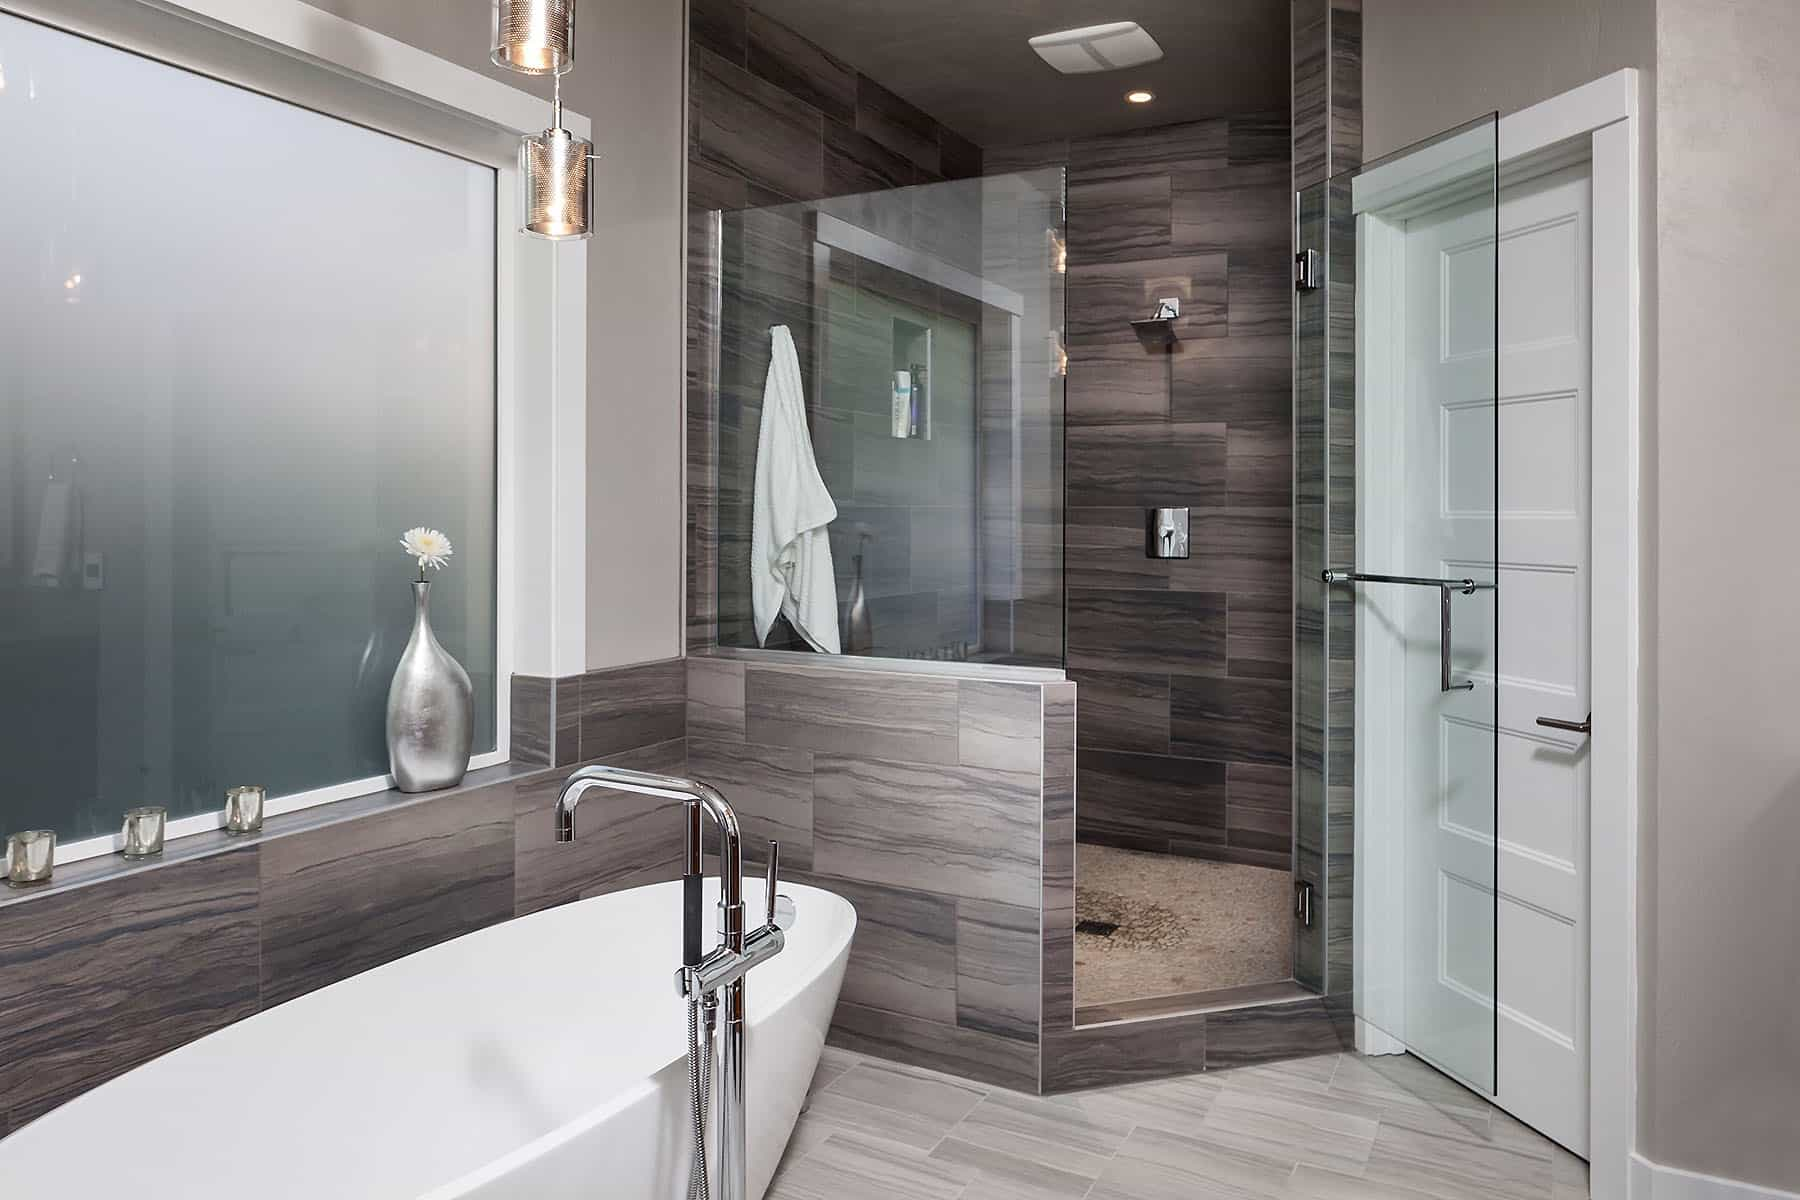 Modern And Masculine Spa Bathroom With Frosted Glass Windows (View 6 of 29)